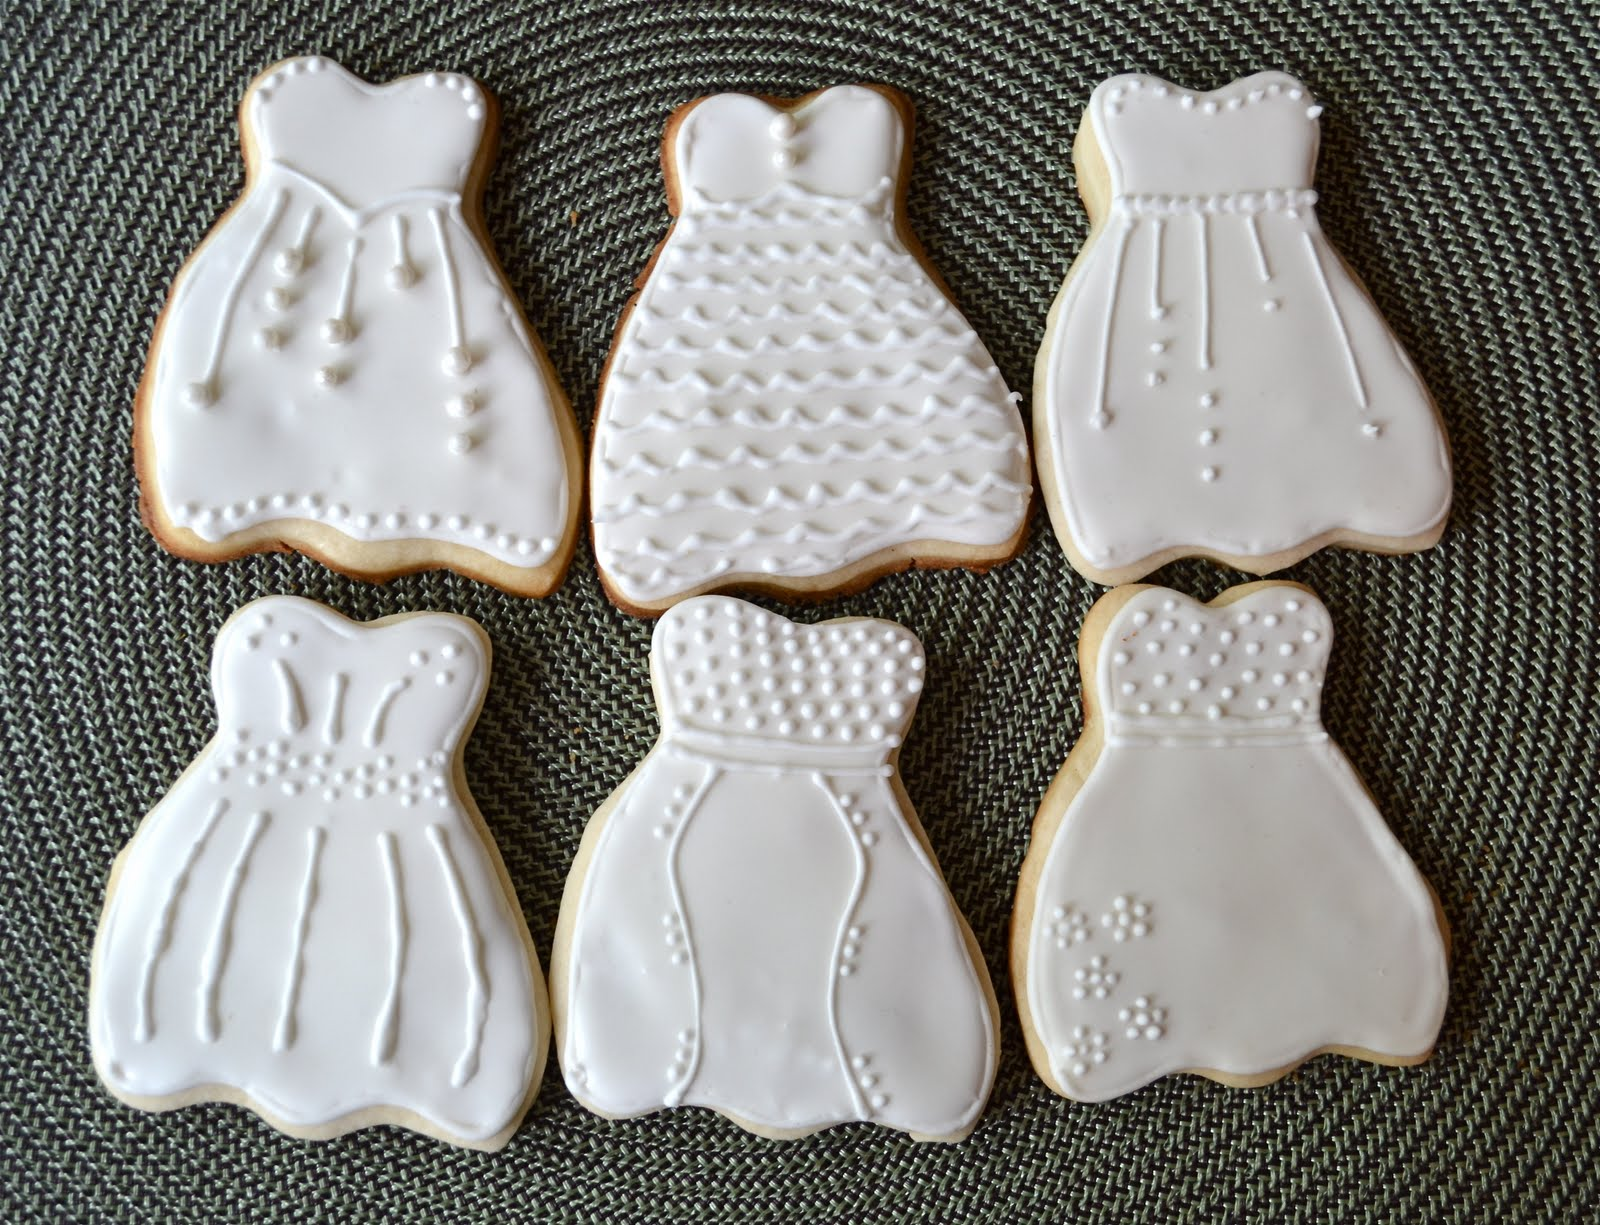 this past weekend i made cookies for a bridal shower i stuck with an all white cookie because i really wanted the designs to shine through rather than